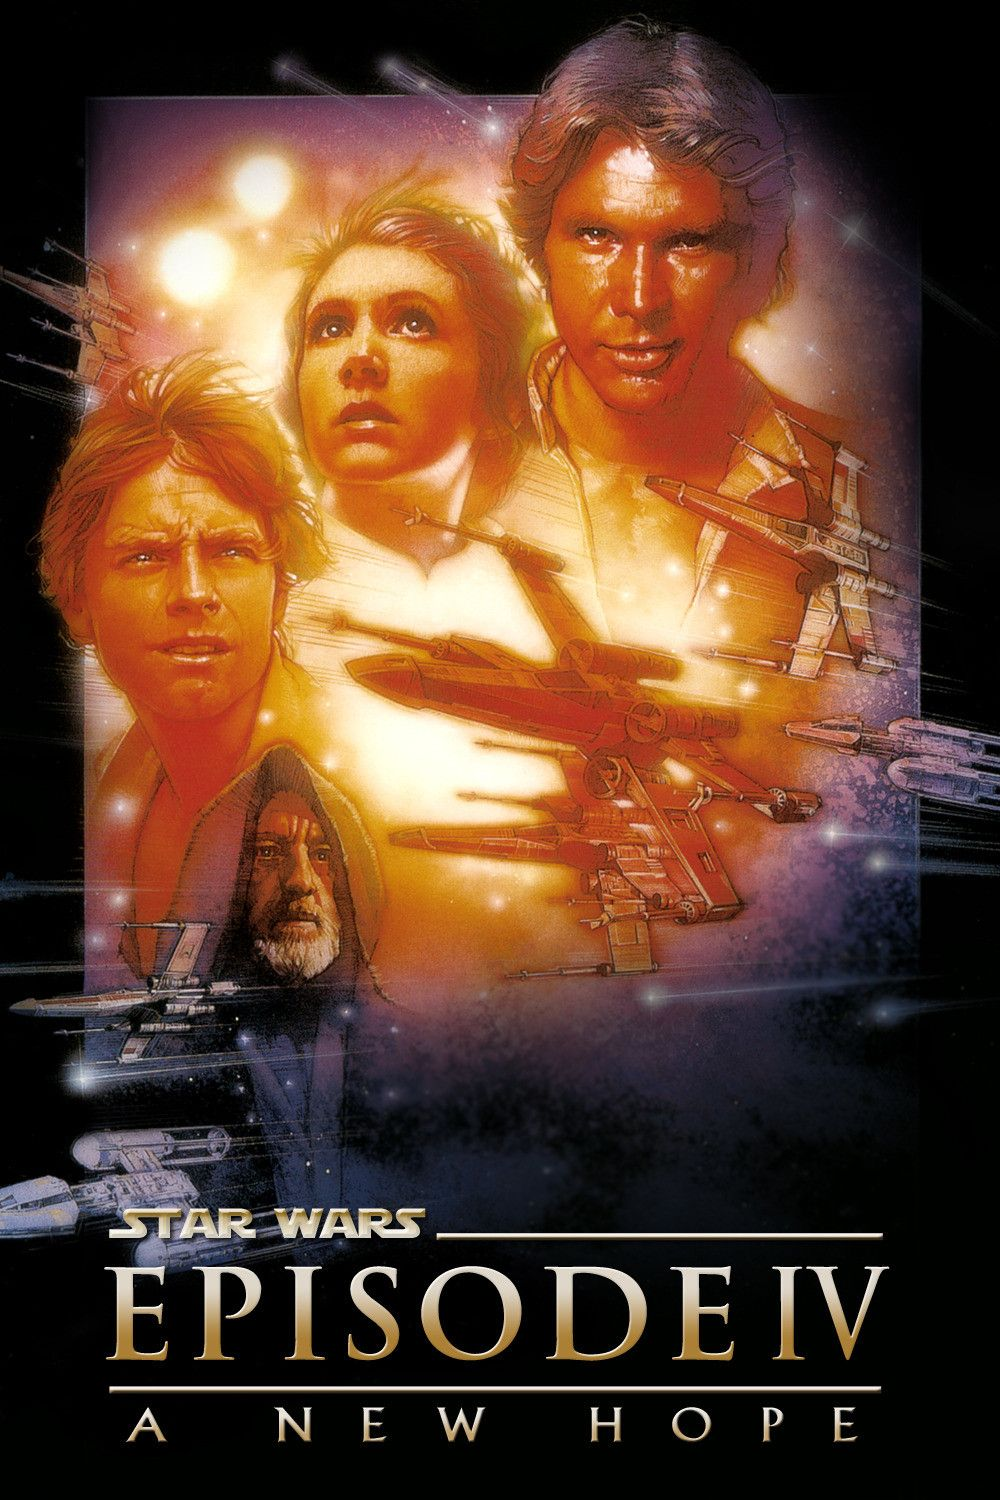 Star Wars Episode IV: A New Hope is a 1977 Action, Adventure film directed by George Lucas and starring Mark Hamill, Carrie Fisher.